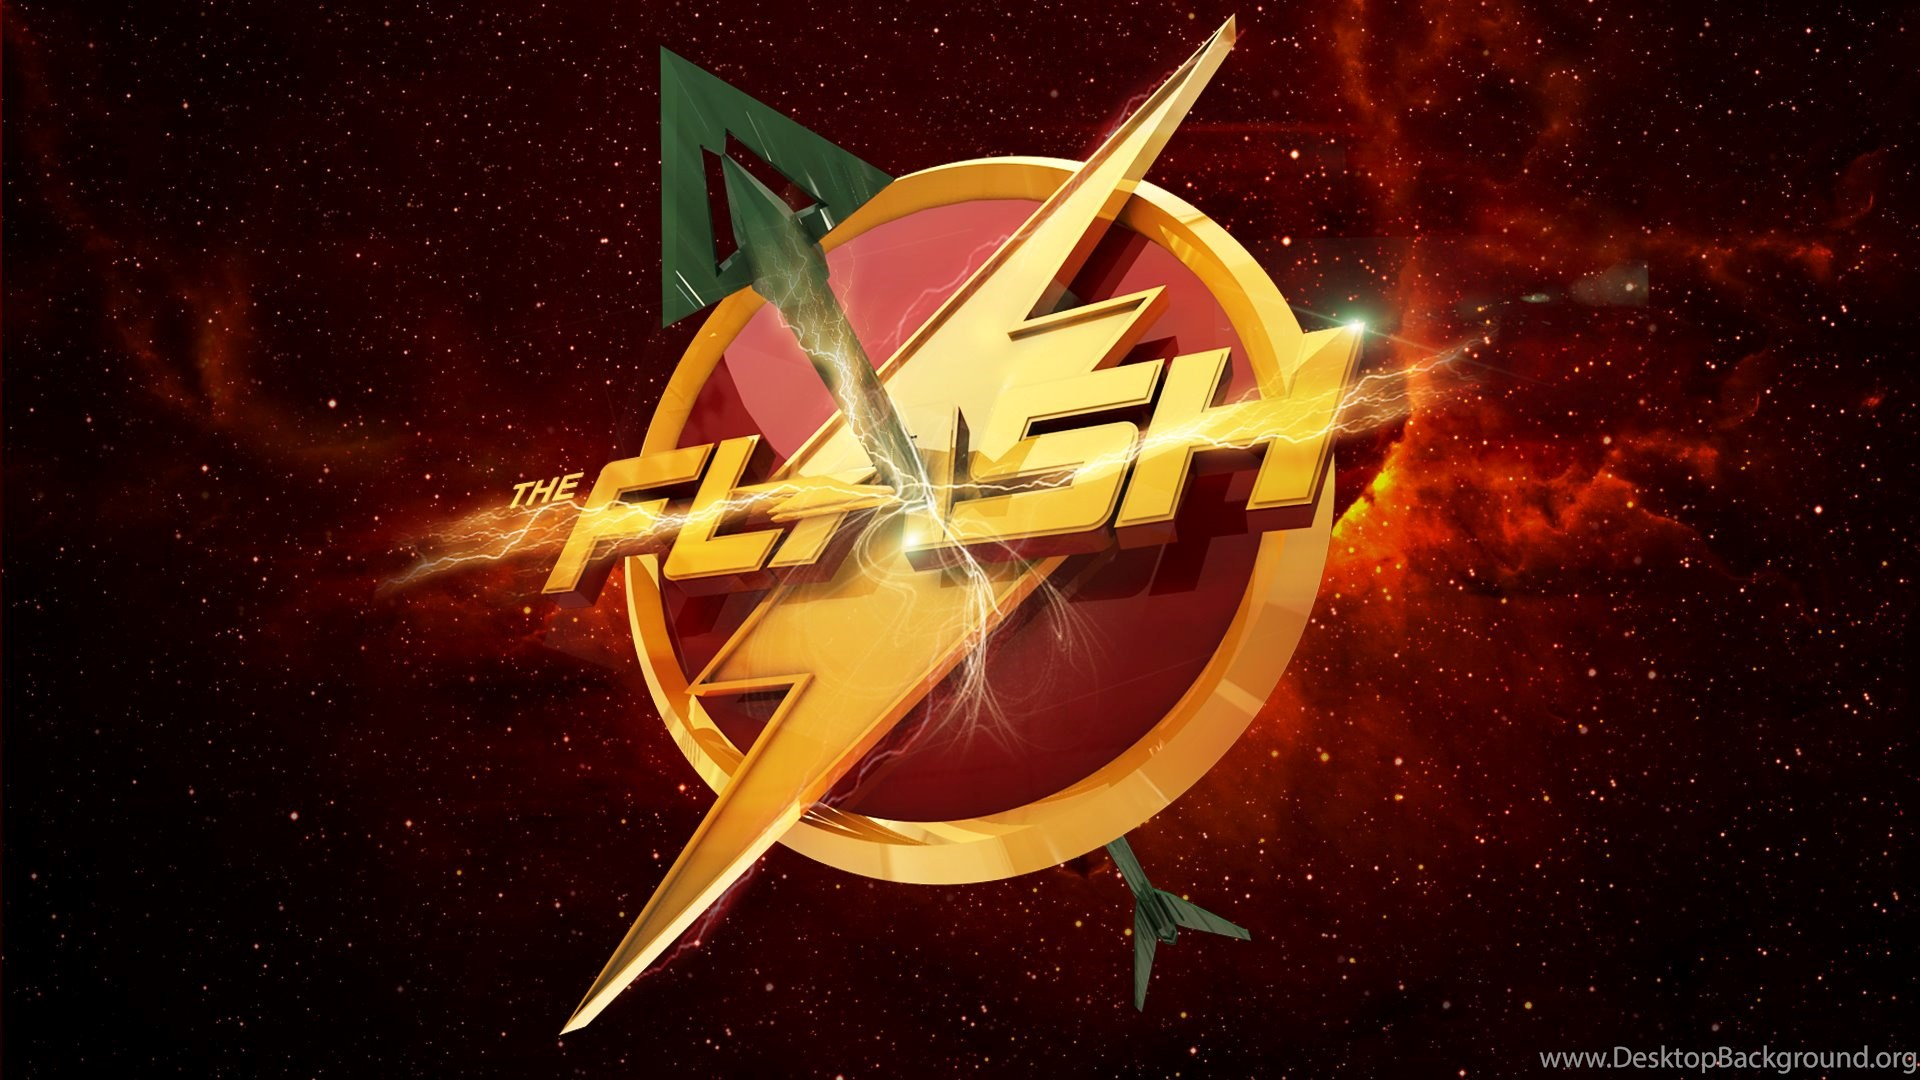 FULL HD 1920x1080 The Flash Wallpapers And Desktop Backgrounds